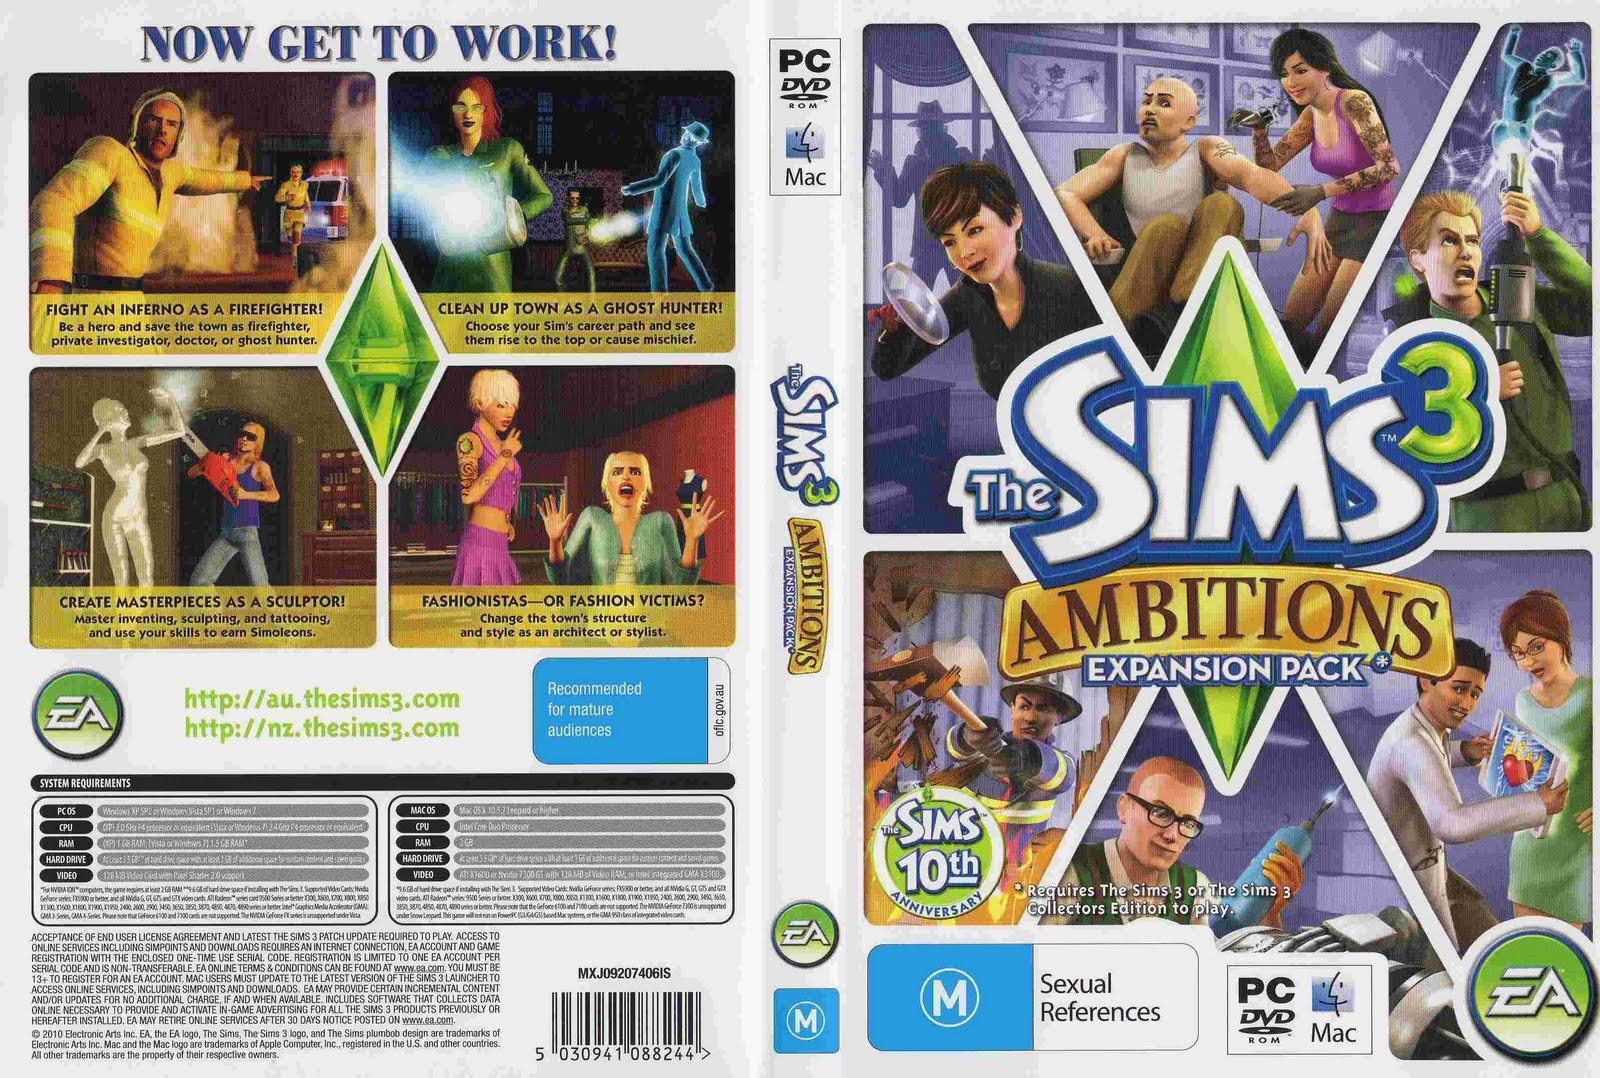 sims games for xbox 360